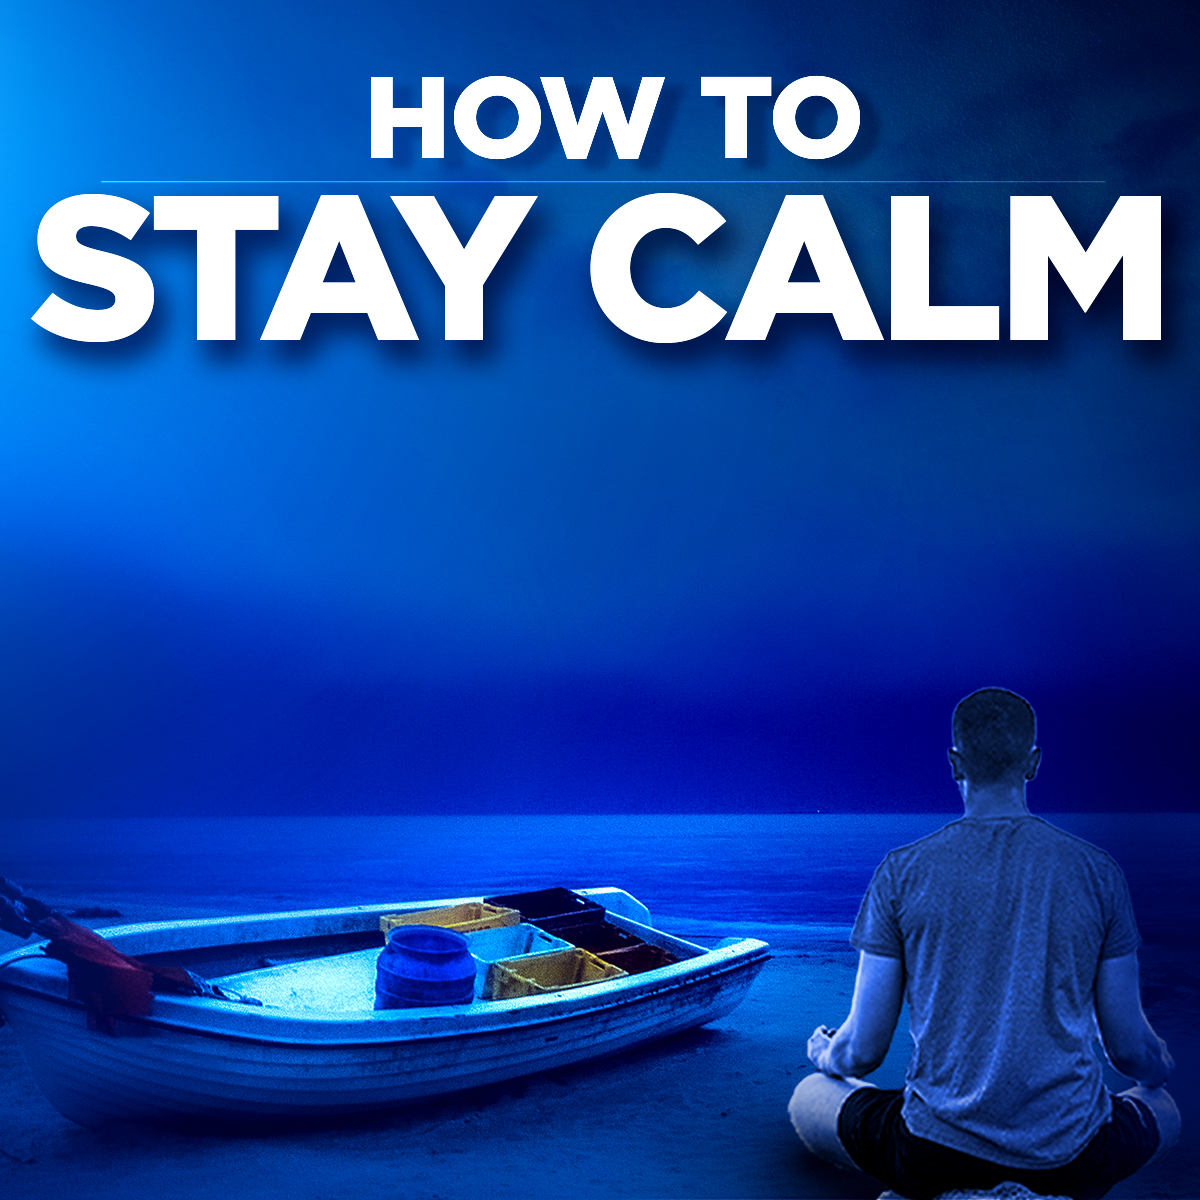 #310 How To Stay Calm (square)